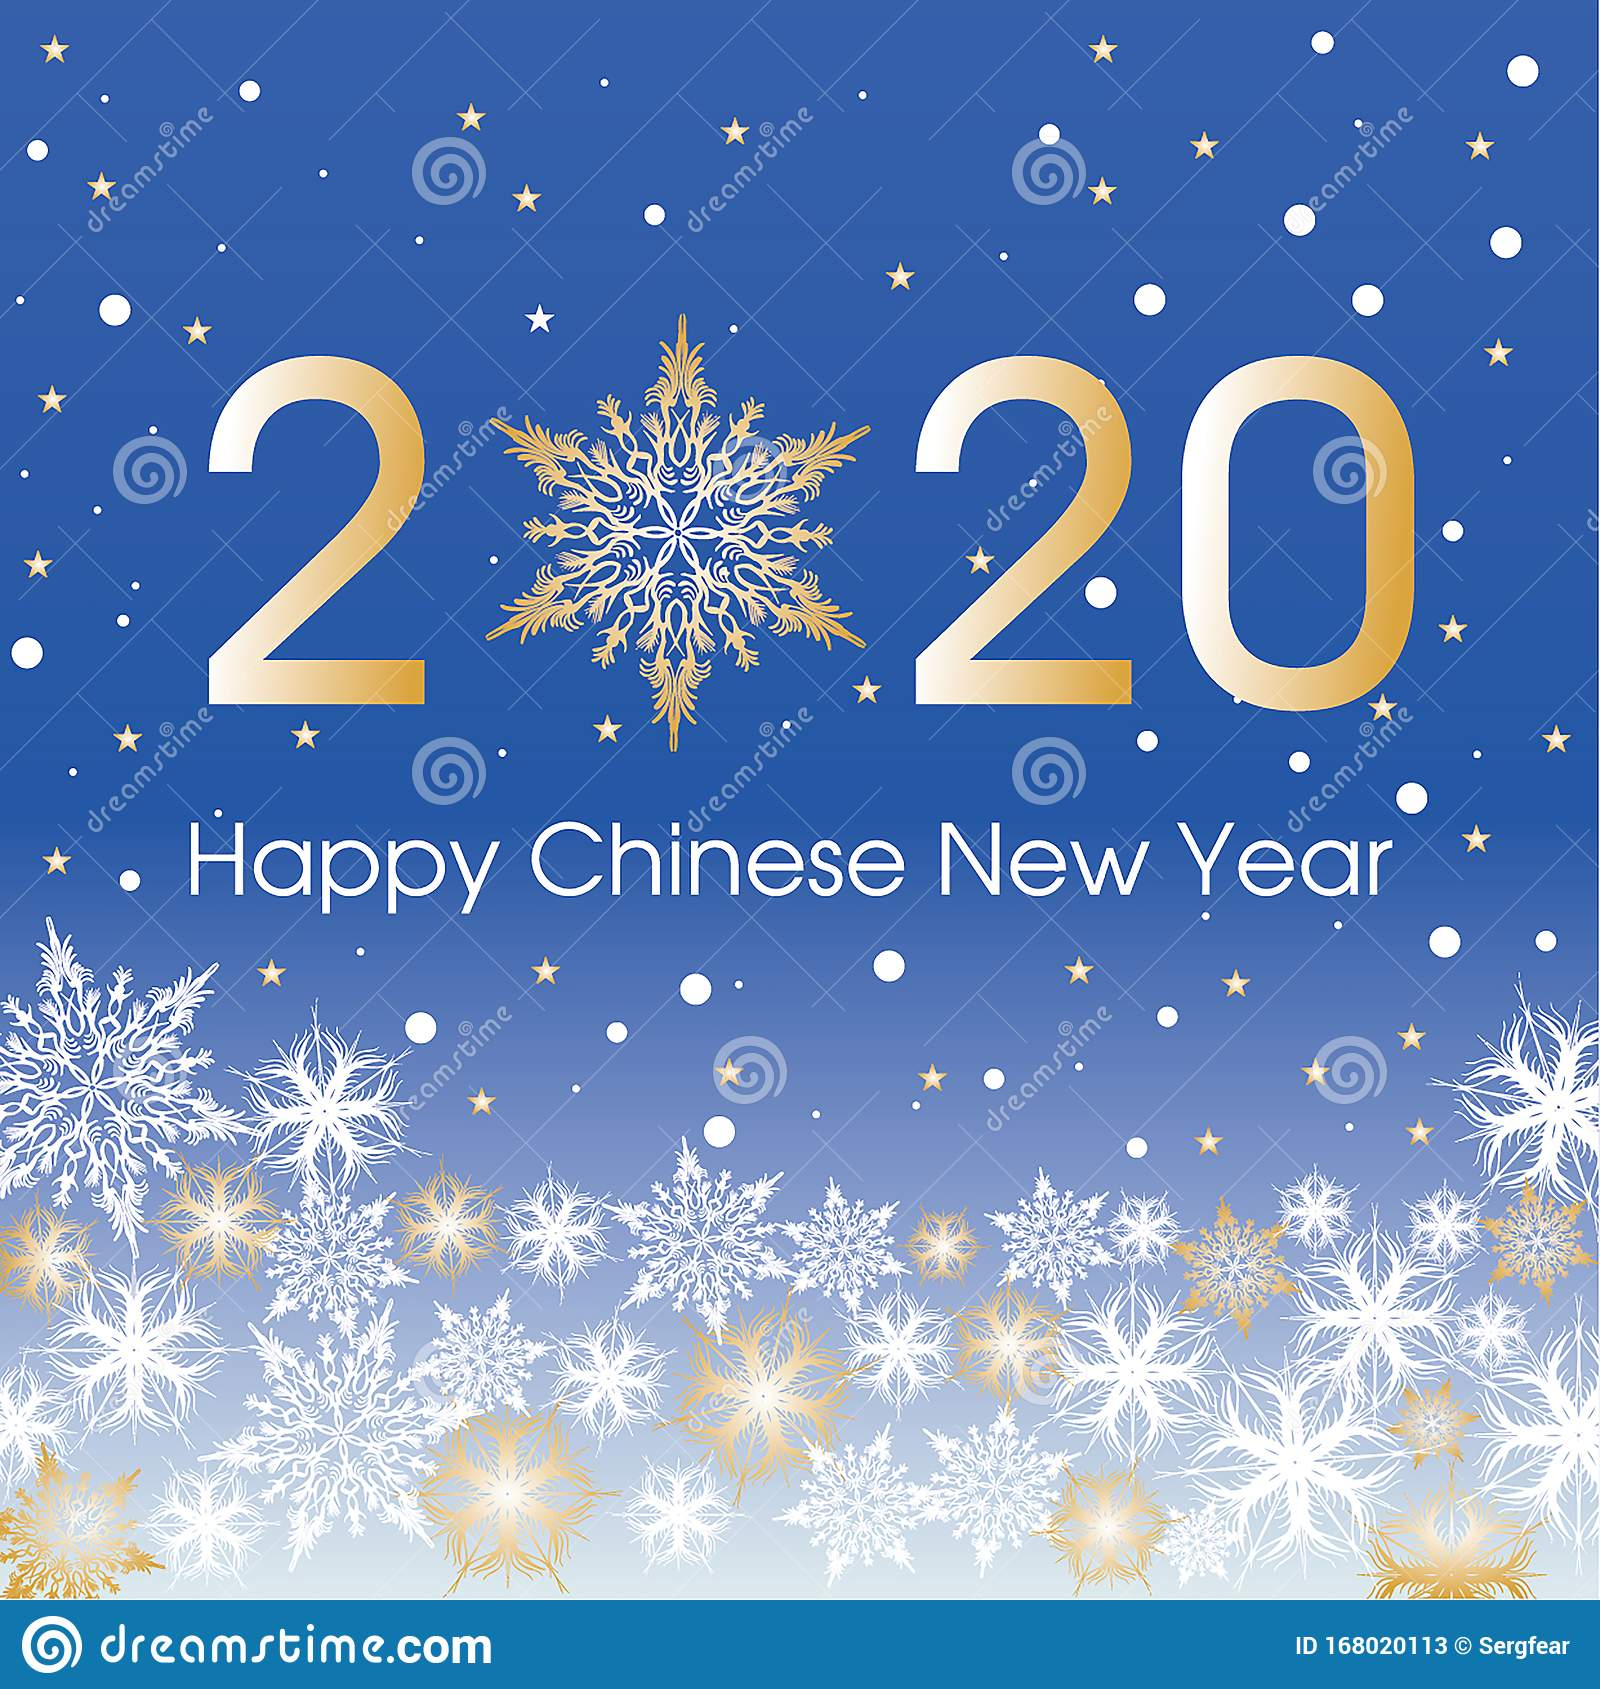 Happy Chinese New Year Card Template Design Patern